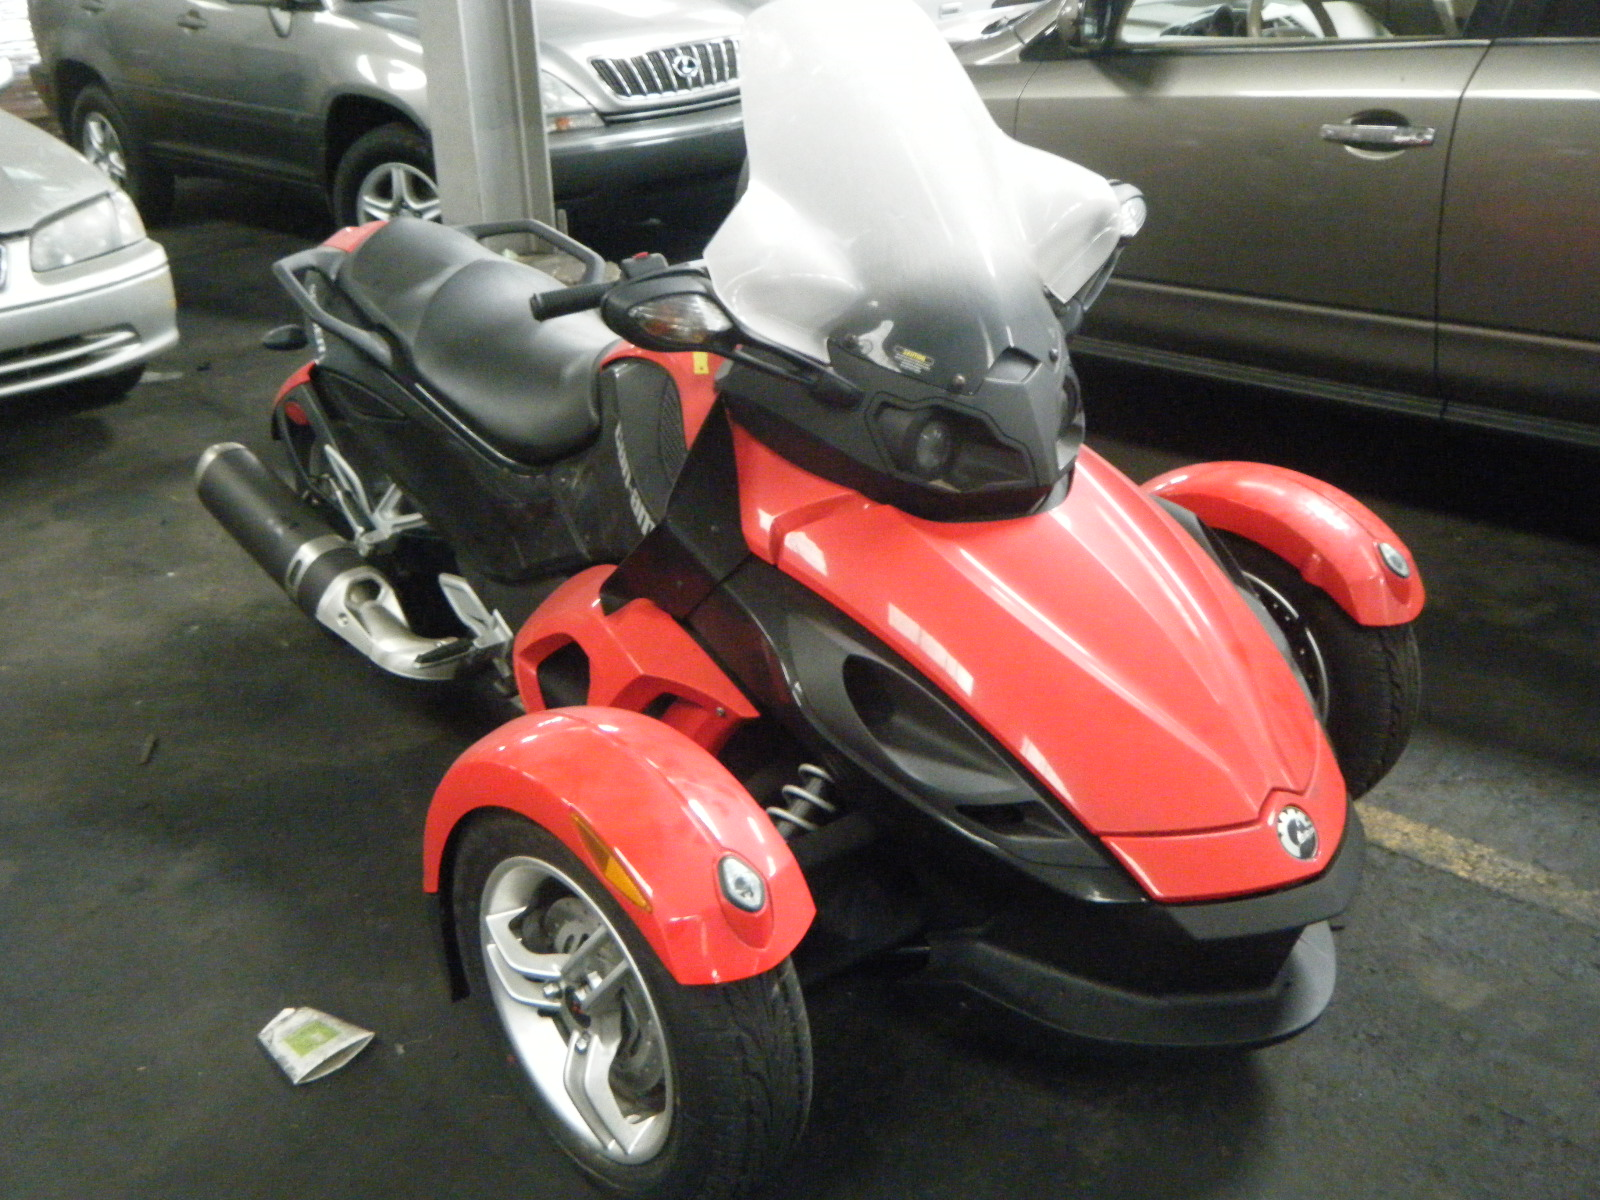 further Can Am Spyder Black And Silver as well P Atmv Ngk G Fl Cg P S moreover A E Daef F C D Febf Cc in addition P Aqidrd V Pd Cv Euqjigkc. on can am spyder vin number location